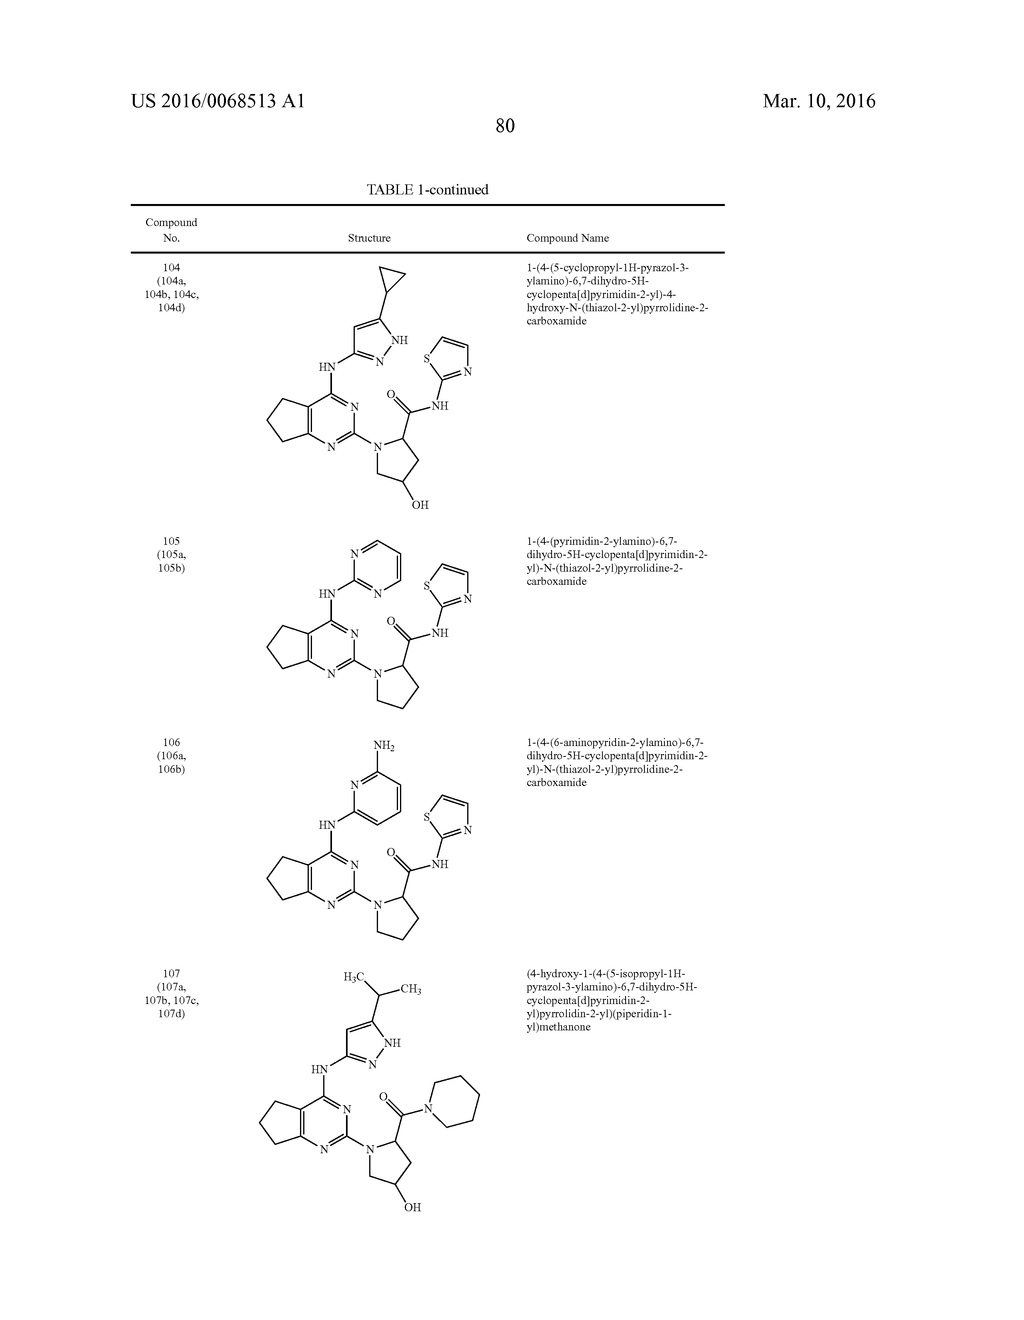 FUSED PYRIMIDINE COMPOUNDS AND USE THEREOF - diagram, schematic, and image 85